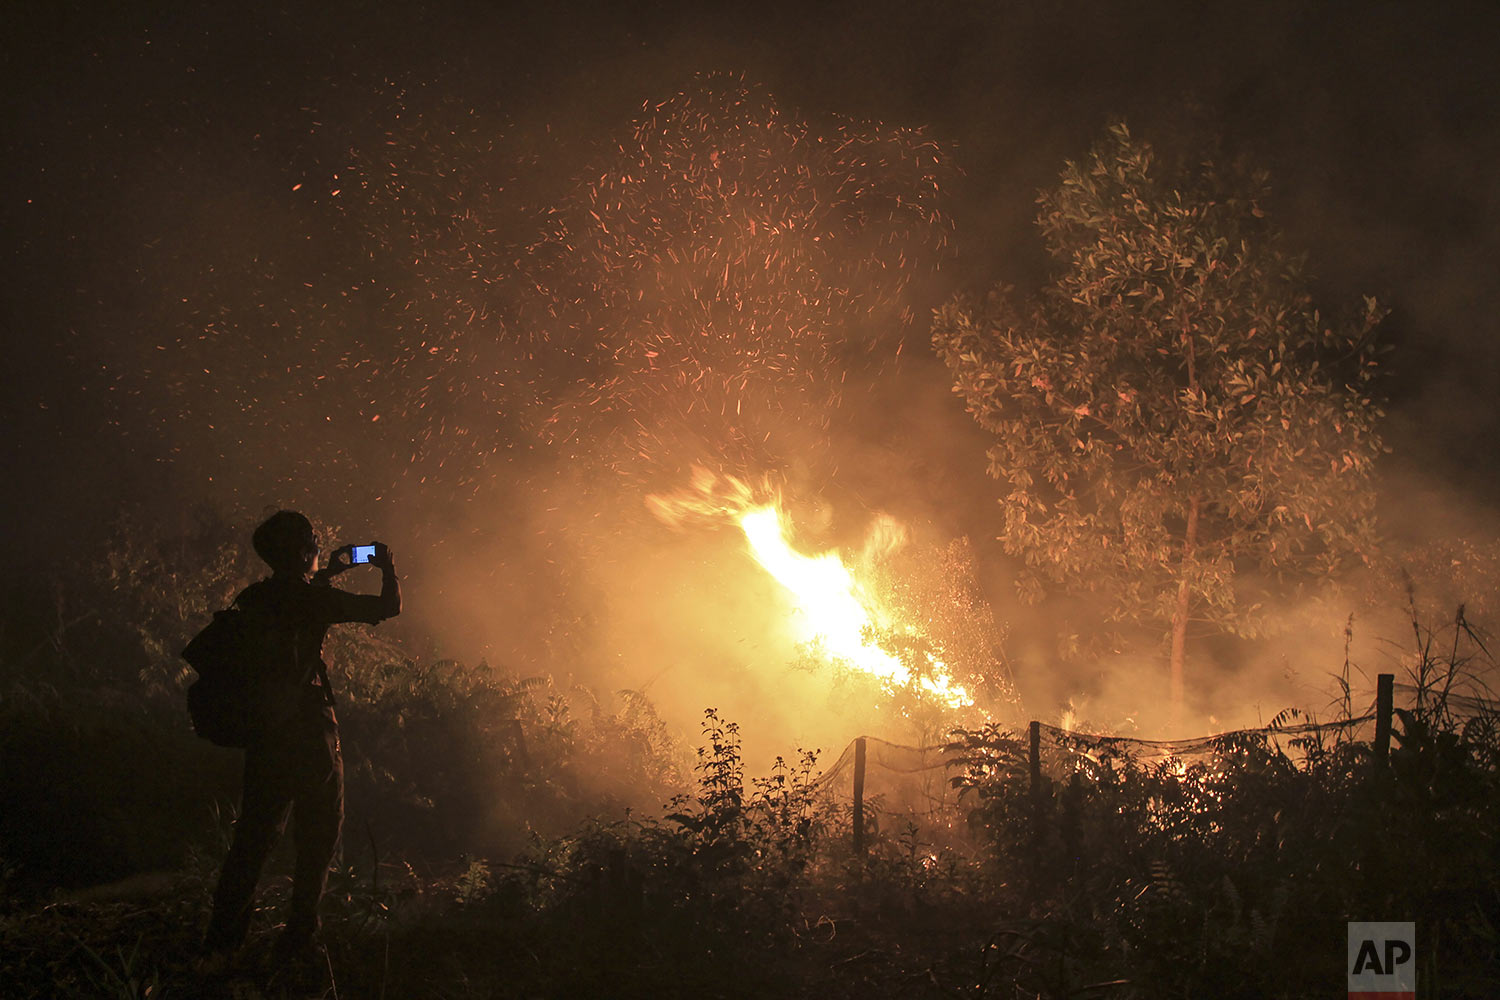 A man uses his mobile phone to take photos of a forest fire in Kampar, Riau province, Indonesia, Monday, Sept. 16, 2019. (AP Photo/Rafka Majjid)